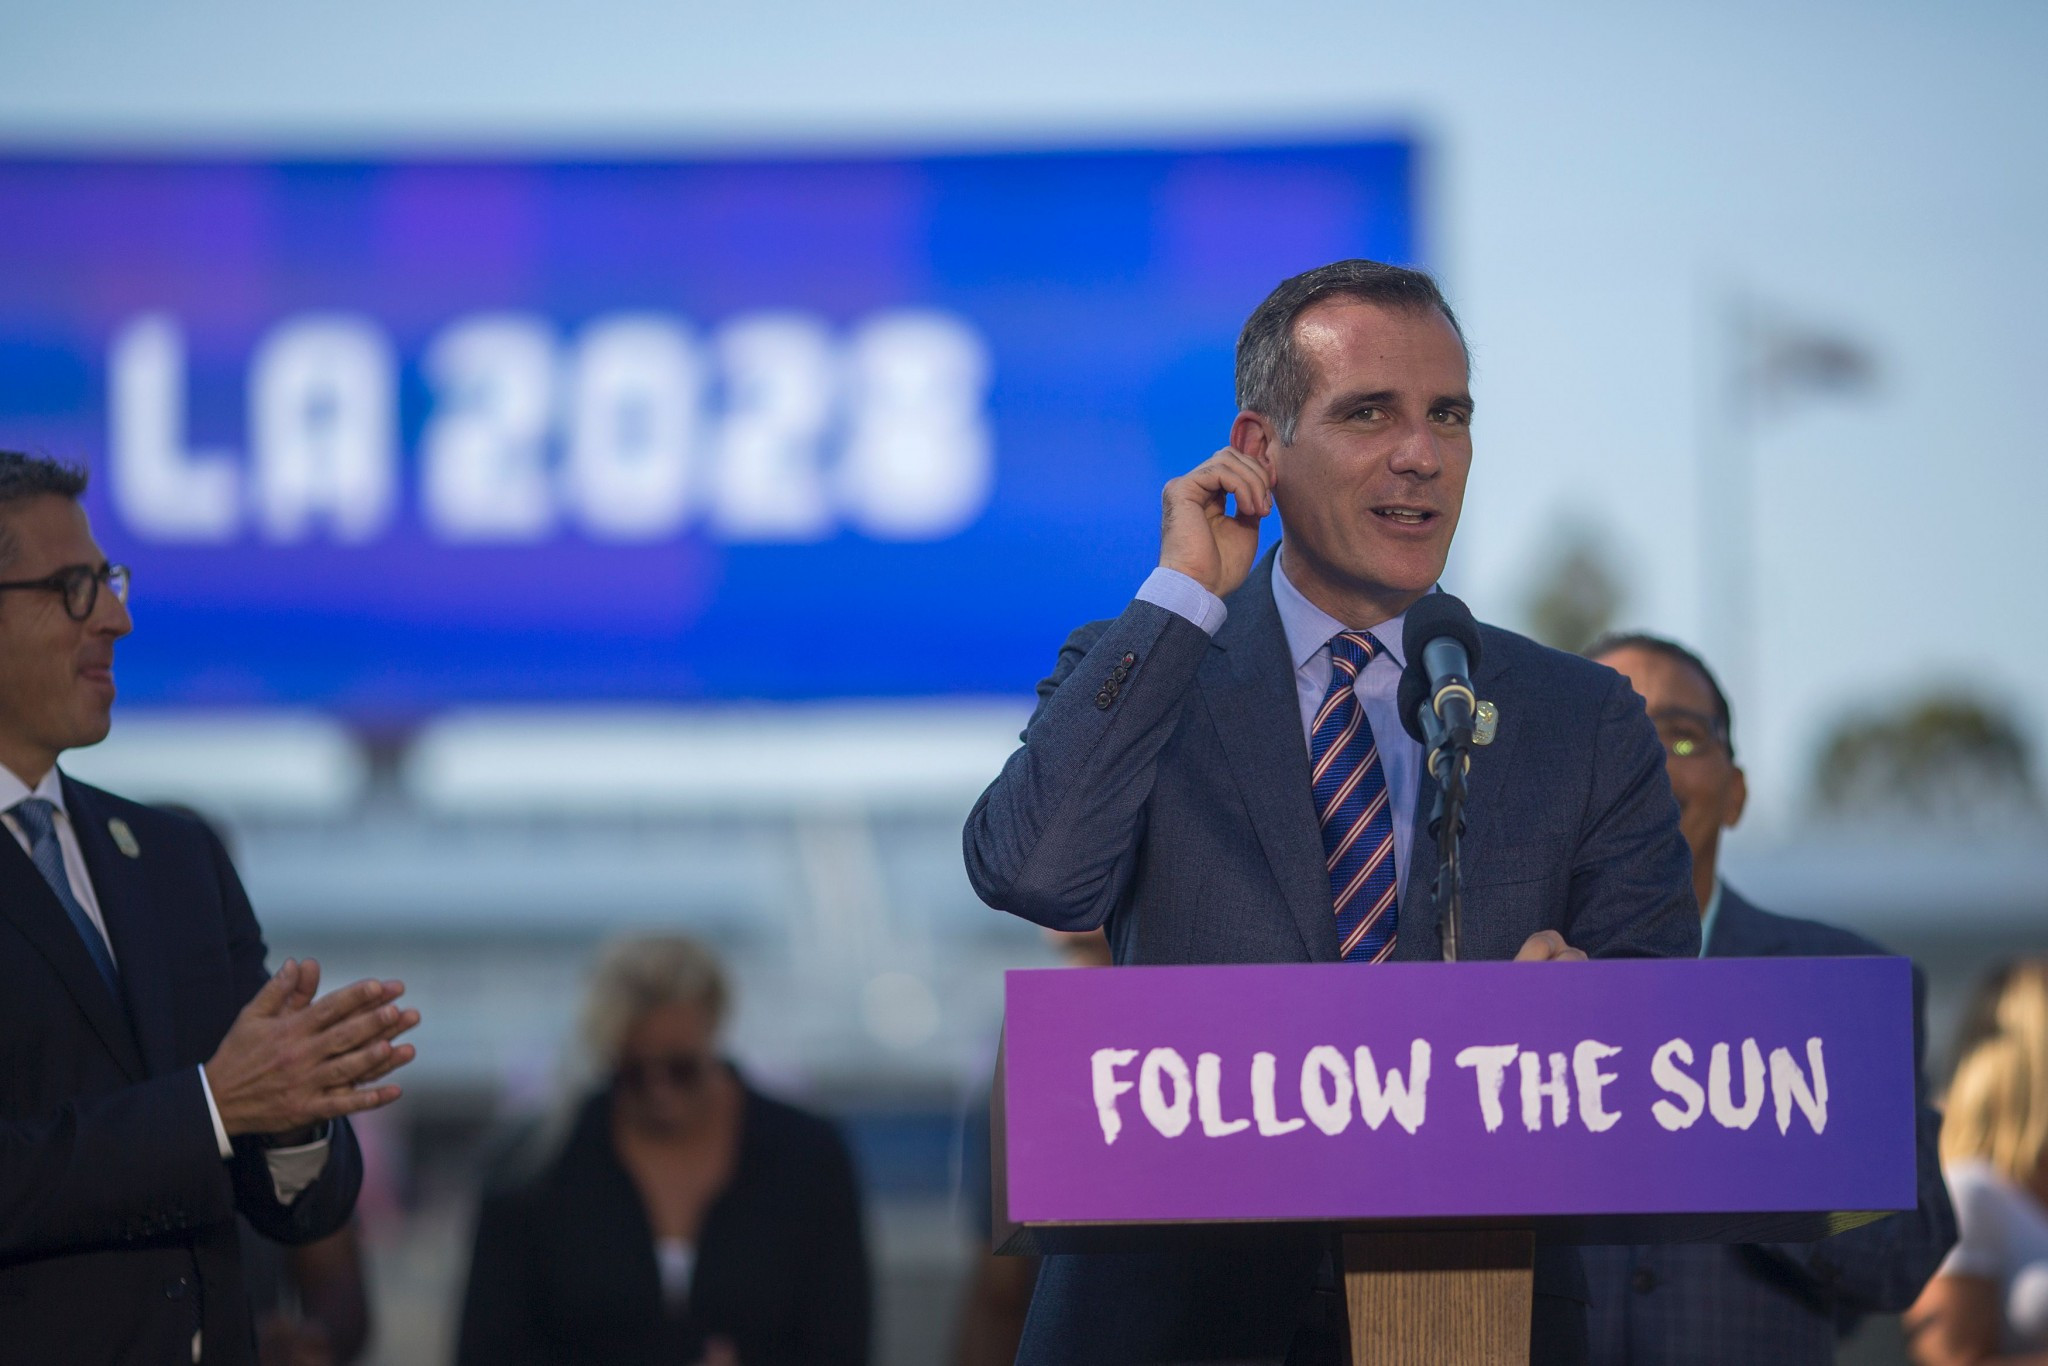 A public opinion survey has found that 83 per cent of Los Angeles' citizens support the city's hosting of the 2028 Olympic and Paralympic Games ©Getty Images